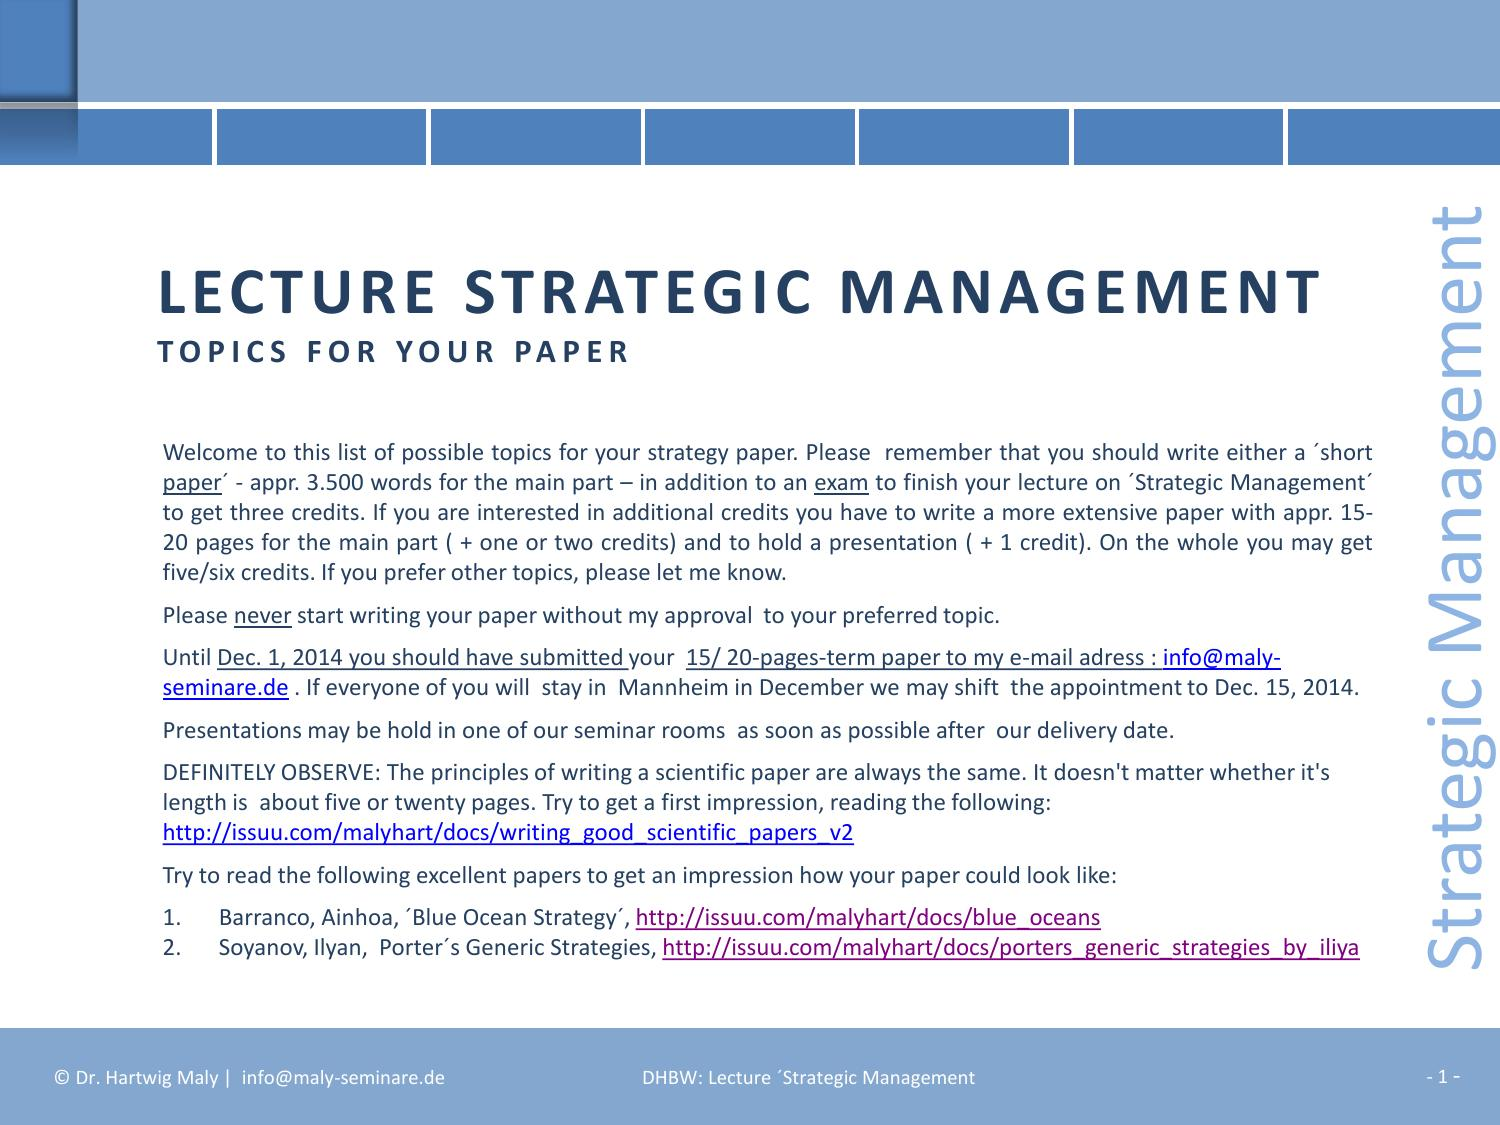 Strategic management topics for papers Oct 2014 by Dr  Hartwig Maly